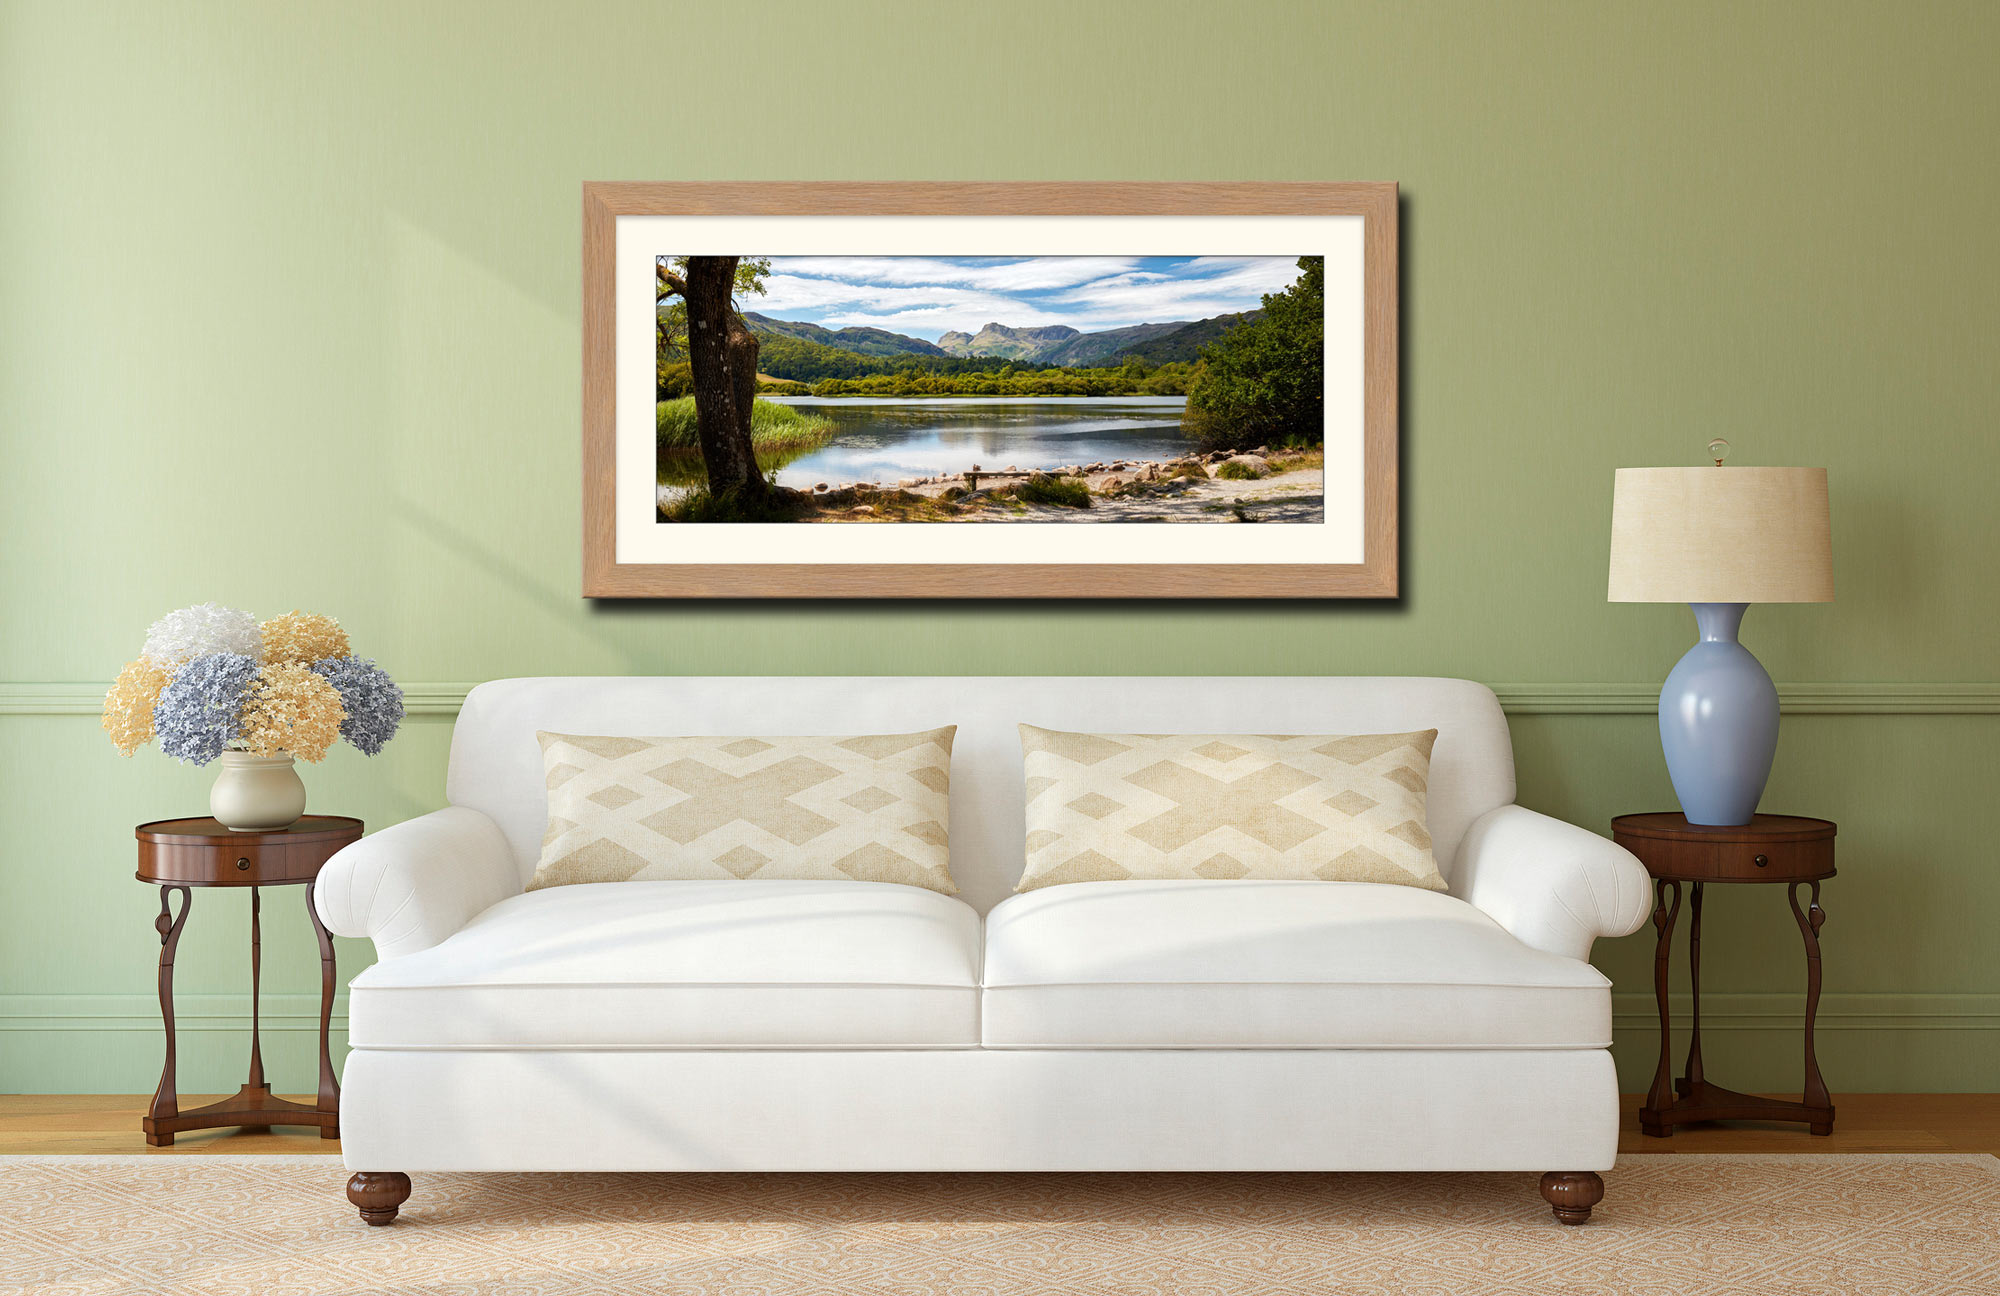 Elterwater Summer Afternoon - Framed Print with Mount on Wall